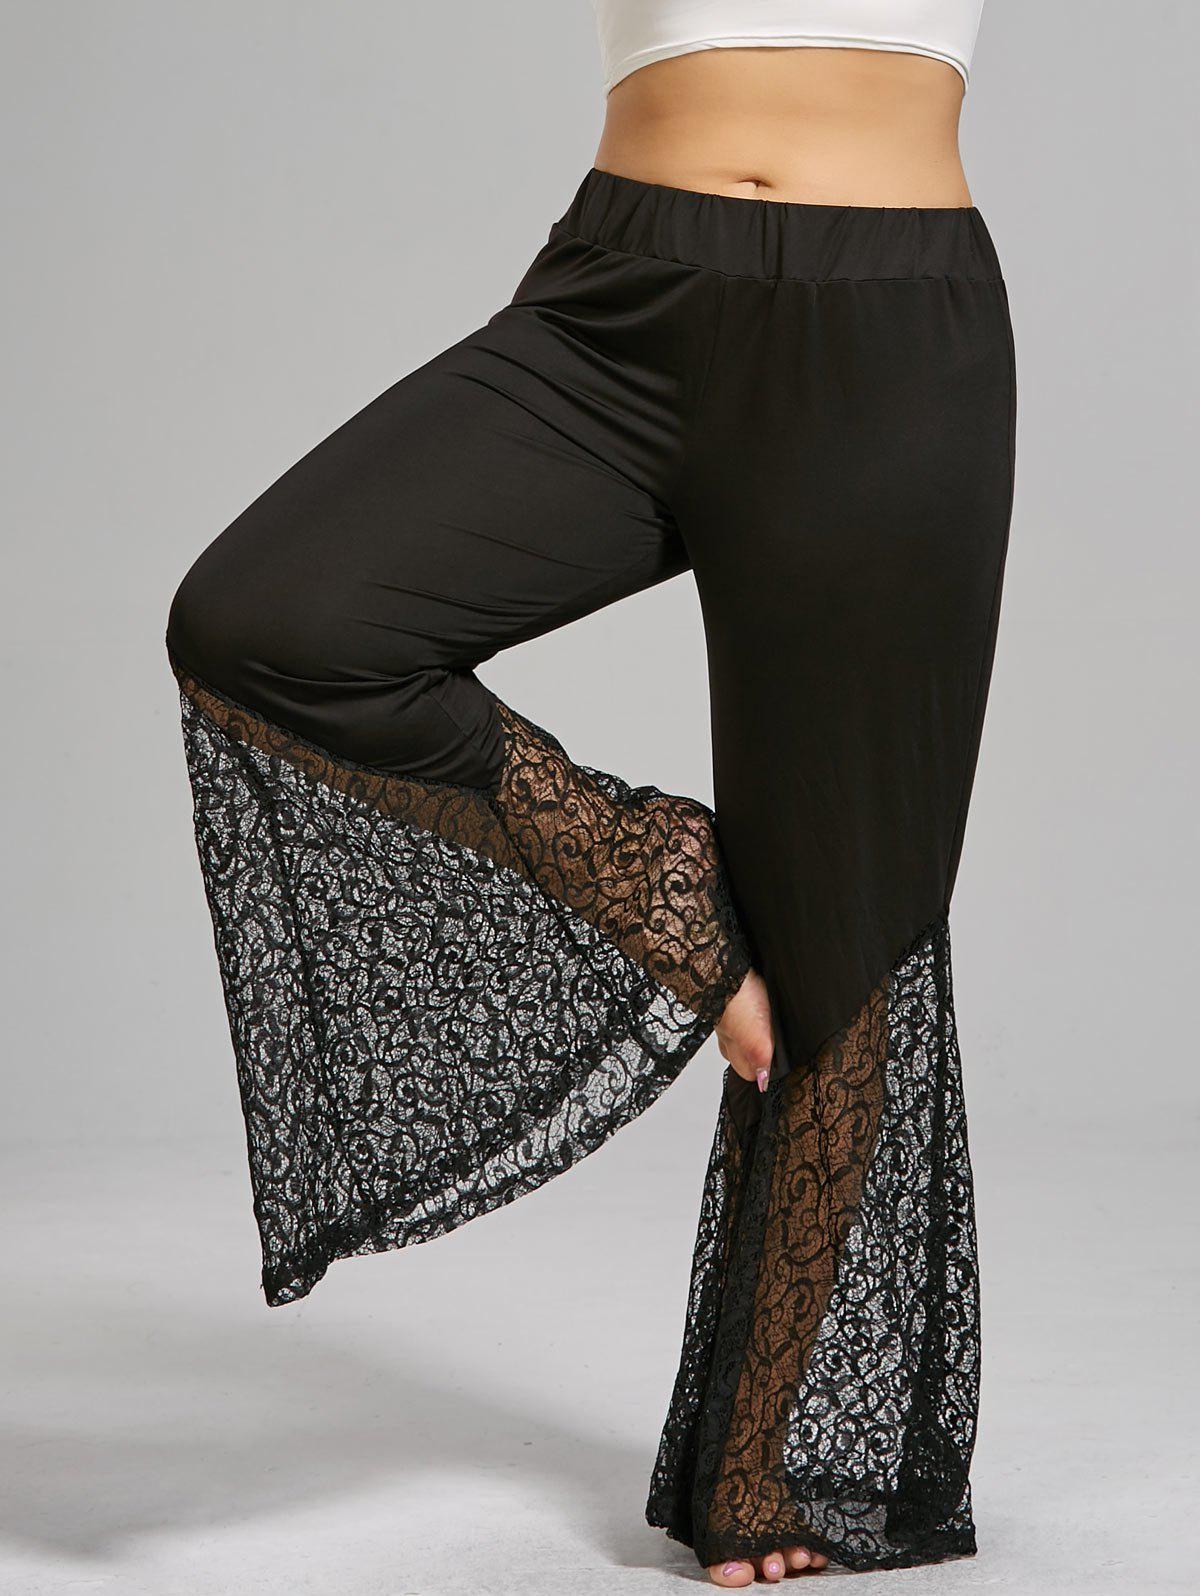 Plus Size Lace Crochet Panel Bell Bottom PantsWOMEN<br><br>Size: 2XL; Color: BLACK; Style: Fashion; Length: Ninth; Material: Cotton,Polyester; Fit Type: Boot Cut; Waist Type: High; Closure Type: Elastic Waist; Pattern Type: Solid; Embellishment: Hollow Out,Lace; Pant Style: Flare Pants; Weight: 0.3300kg; Package Contents: 1 x Pants;